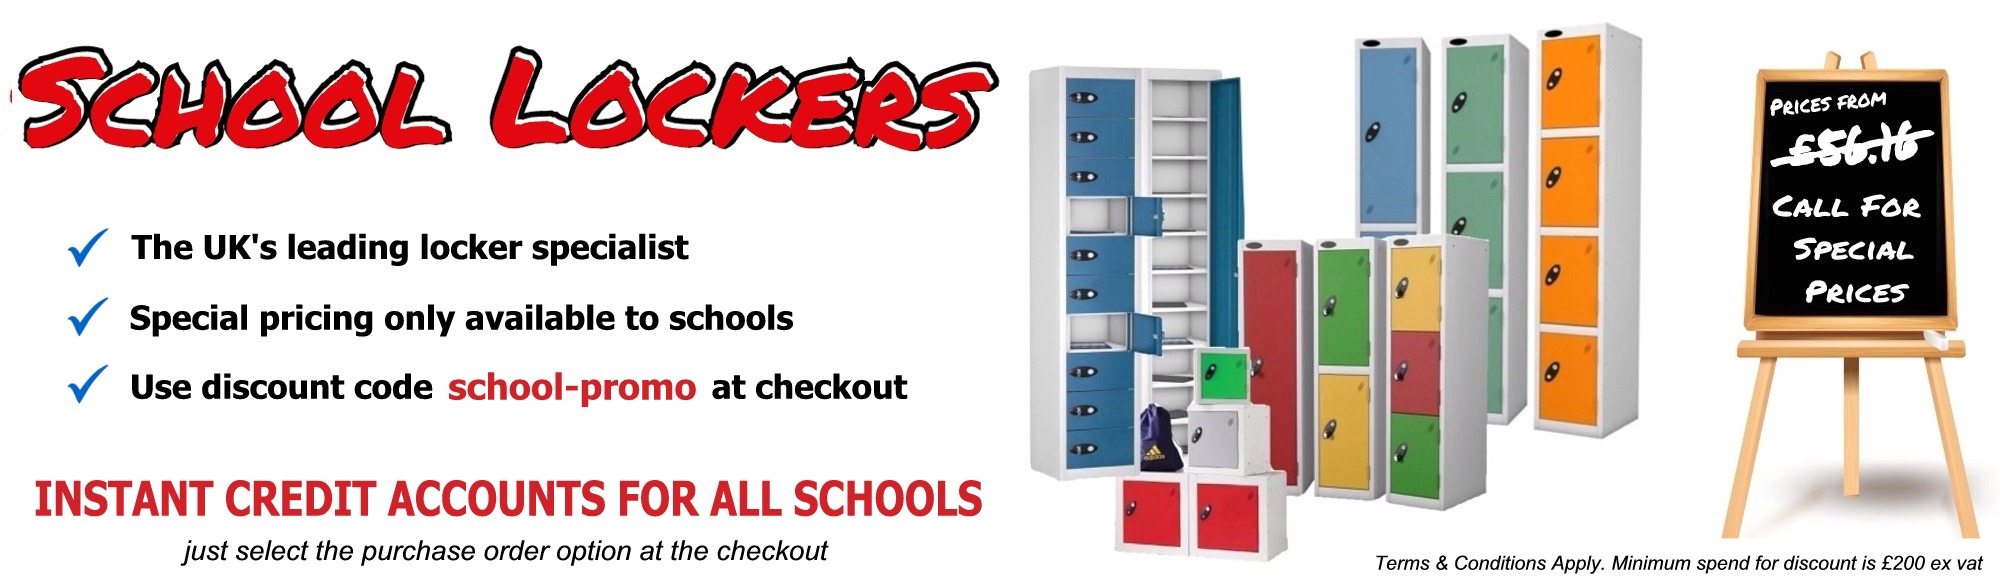 school lockers, special prices, discouts for schools